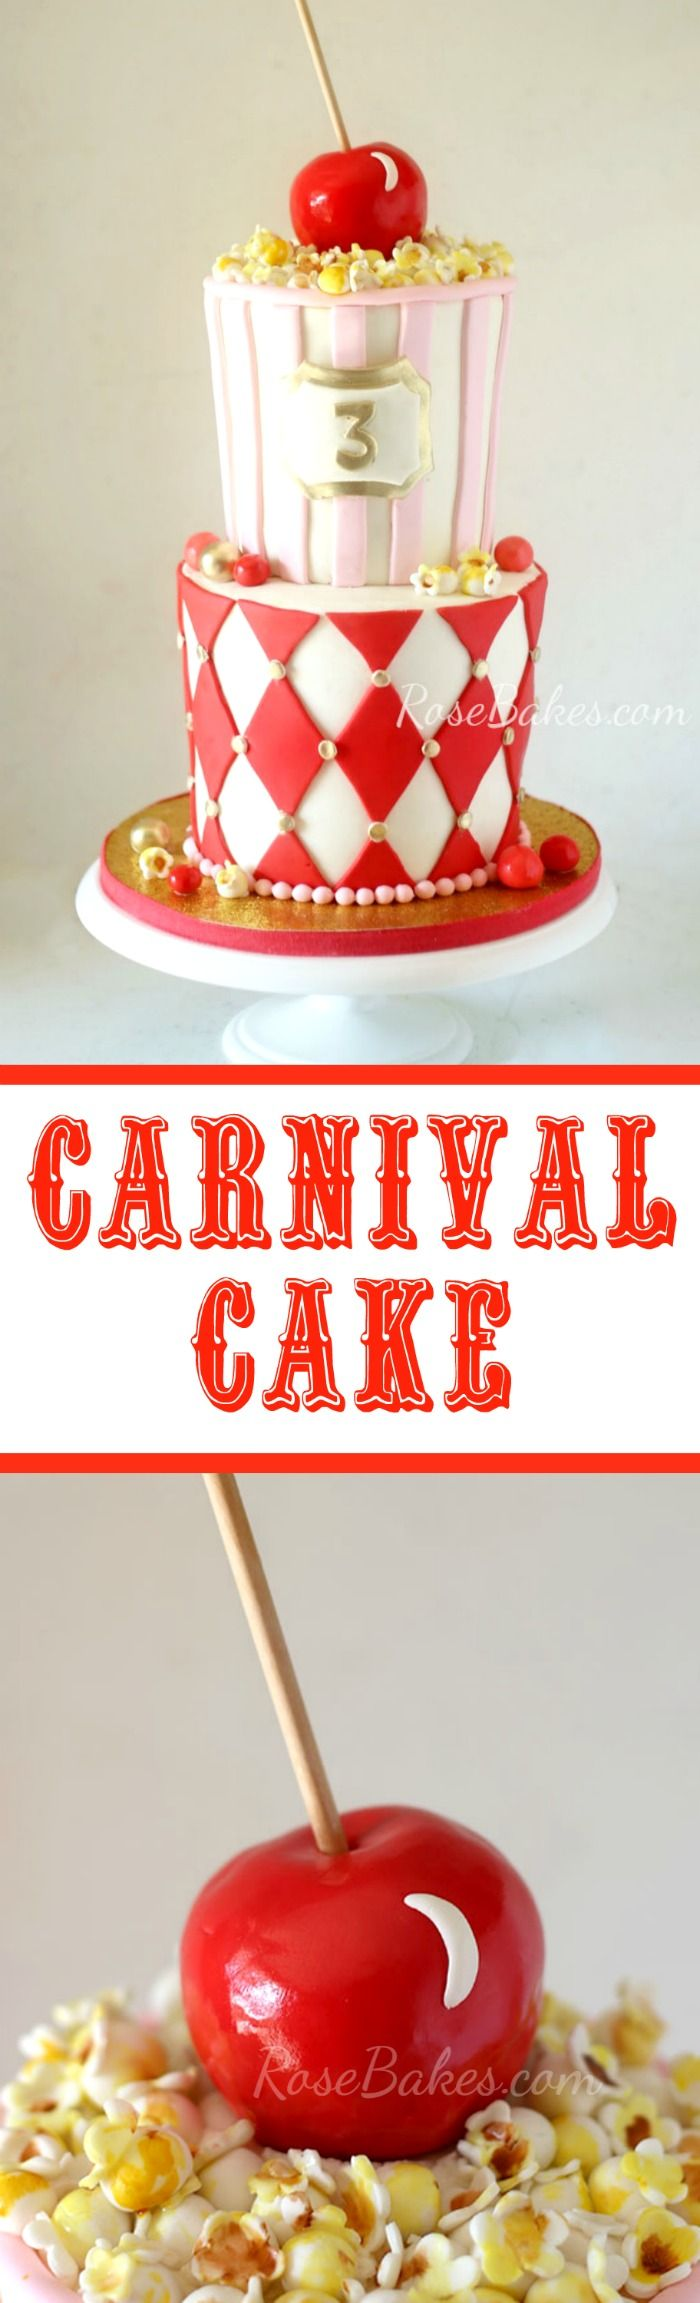 Carnival Cake by Rose Bakes with Fondant Popcorn and Candy Apple Topper